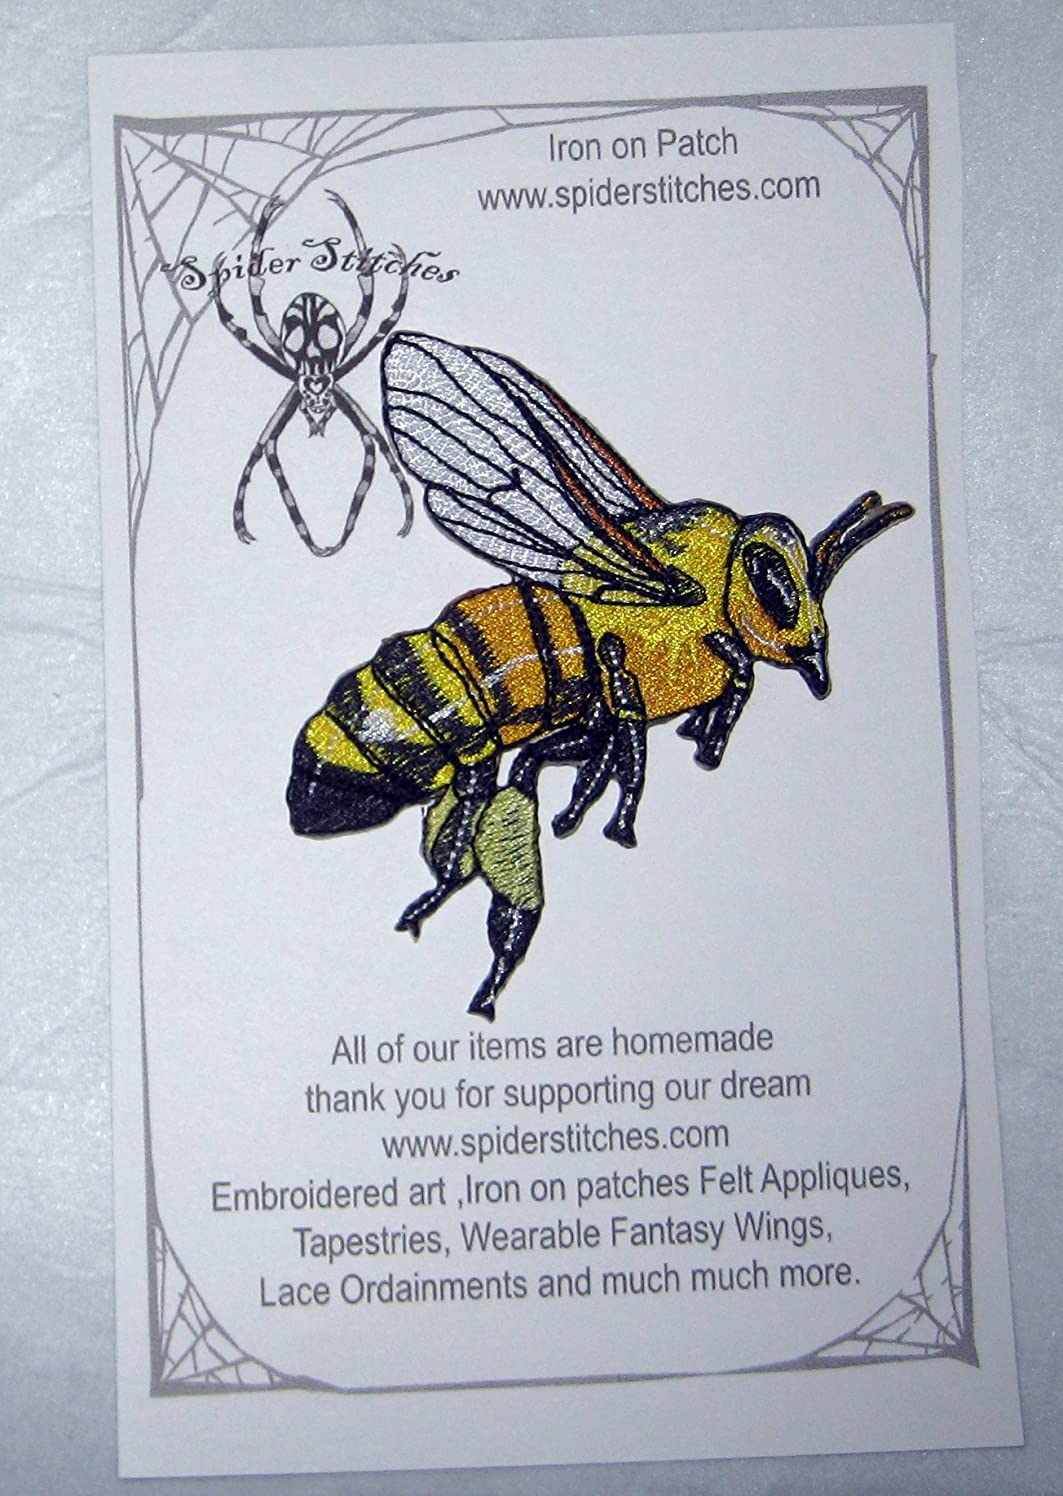 Epic Honey Bee Worker Apis Mellifera Iron on Patch Beekeeping bee Keeper Real